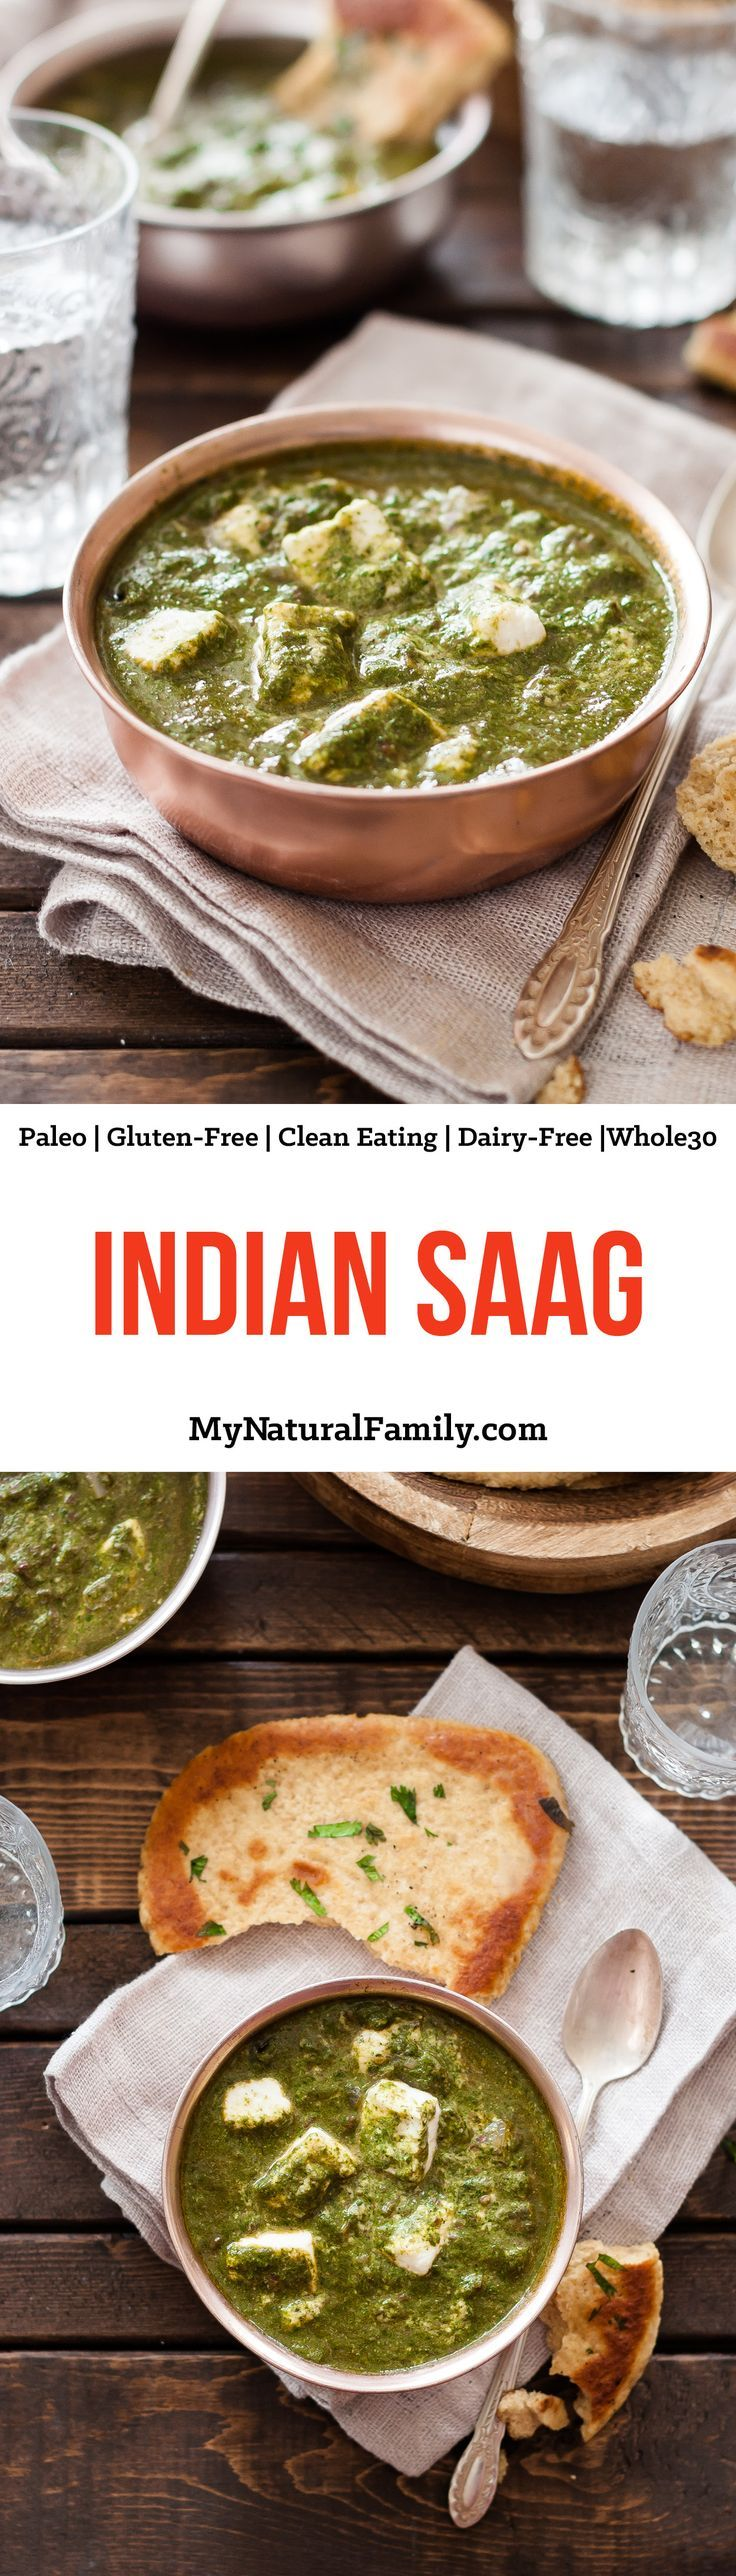 Indian Saag Recipe {Paleo, Clean Eating, Gluten-Free, Dairy-Free, Vegetarian, Whole30} - I love Indian food and have tried lots, but chicken saag is my favorite by far. I always order it at my favorite Indian restaurant, but I actually like this recipe be